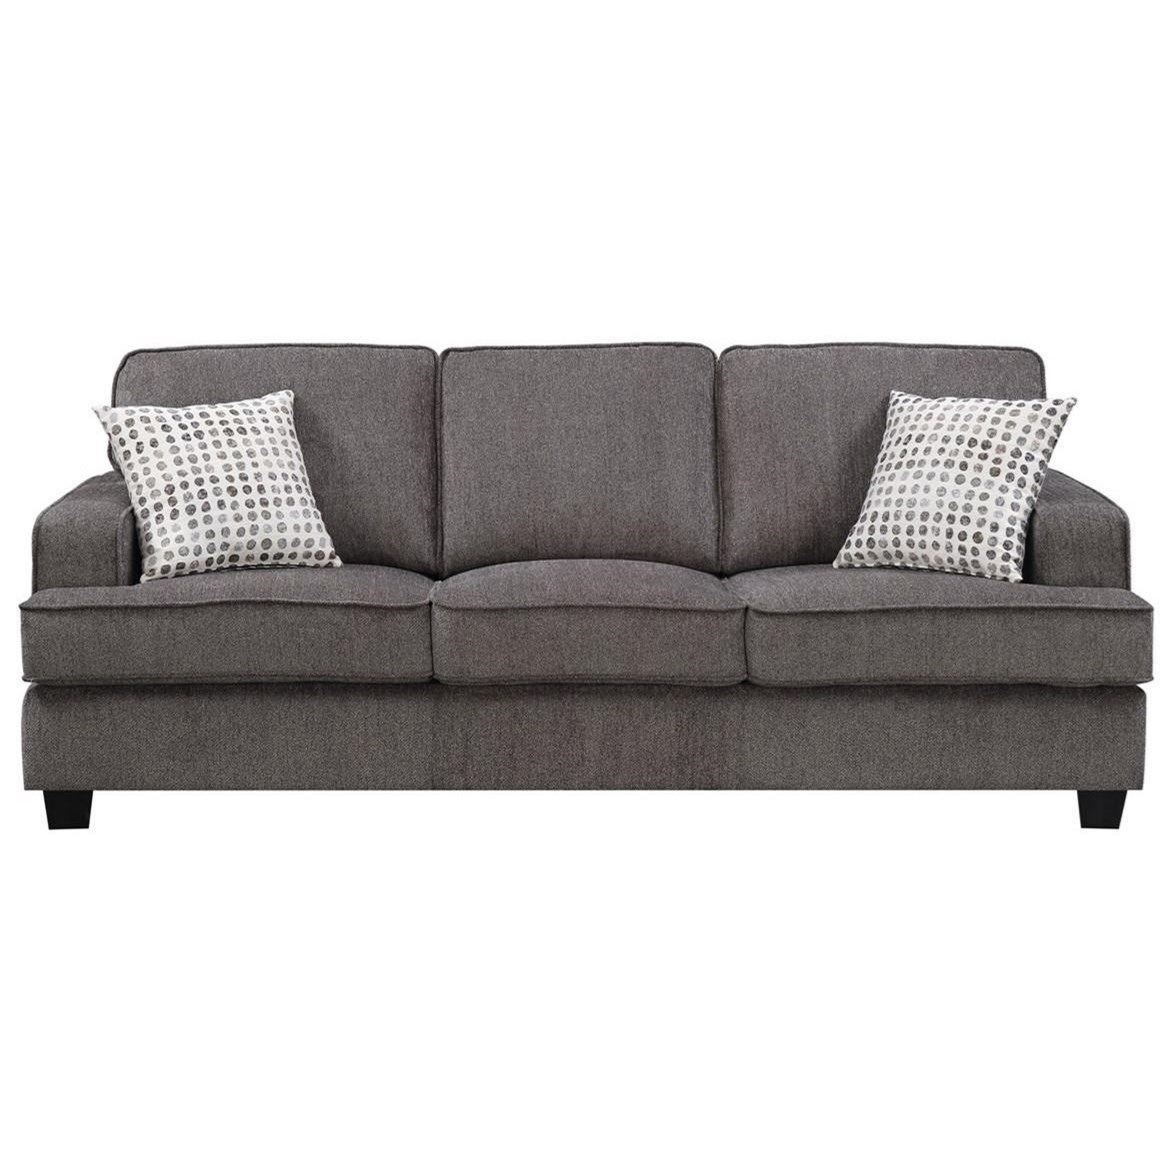 Carter Sofa W/2 Accent Pillows by Emerald at Northeast Factory Direct